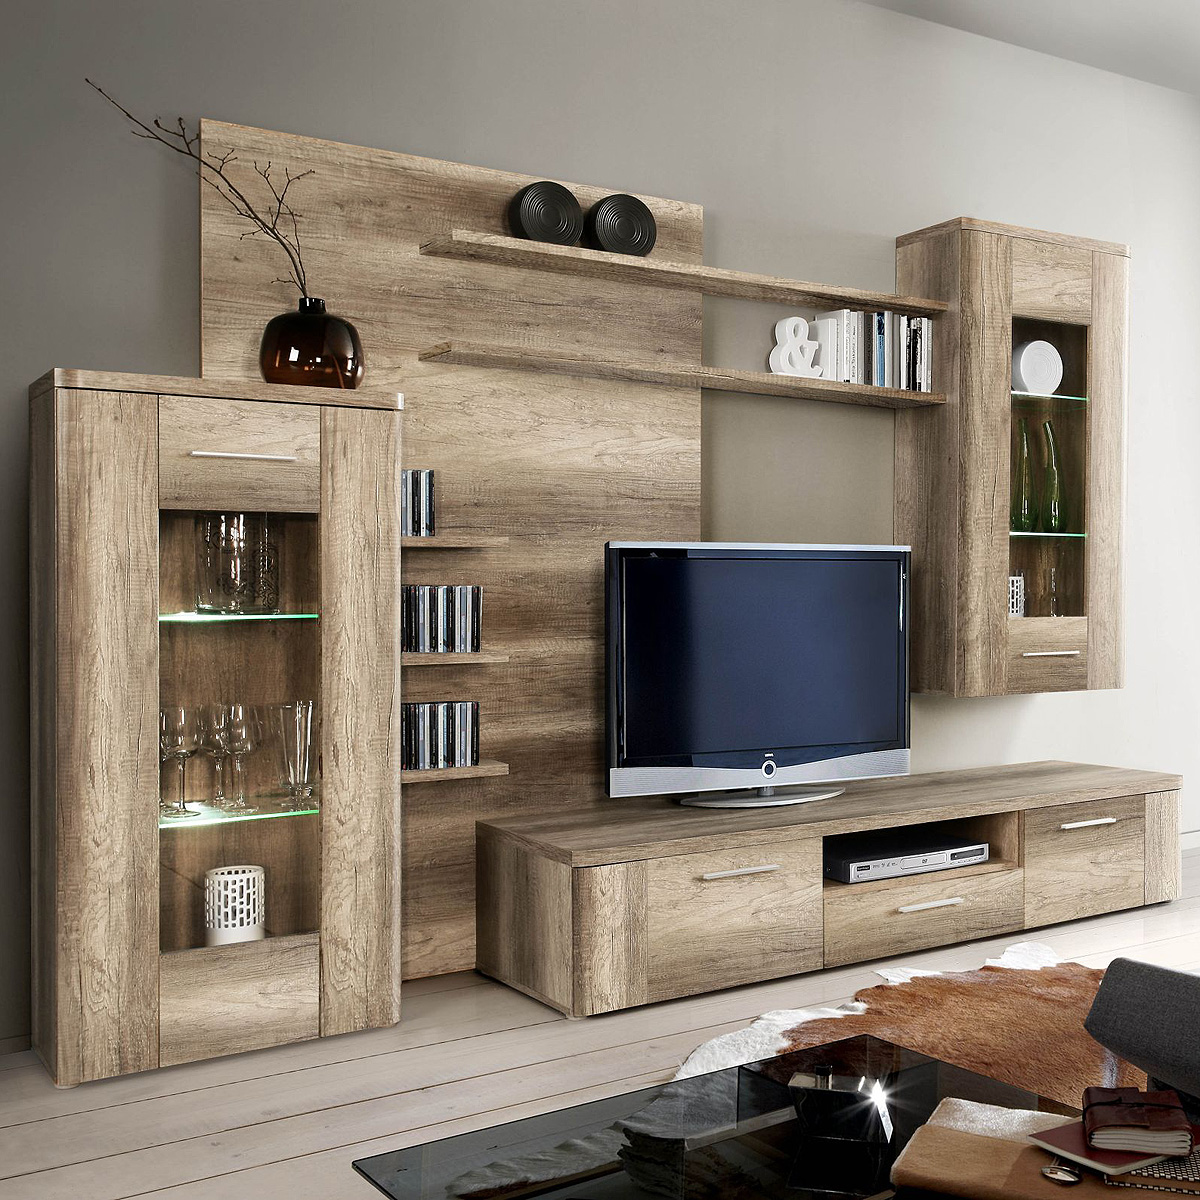 wohnwand buffalo anbauwand wohnkombi wohnzimmer eiche antik inkl led ebay. Black Bedroom Furniture Sets. Home Design Ideas